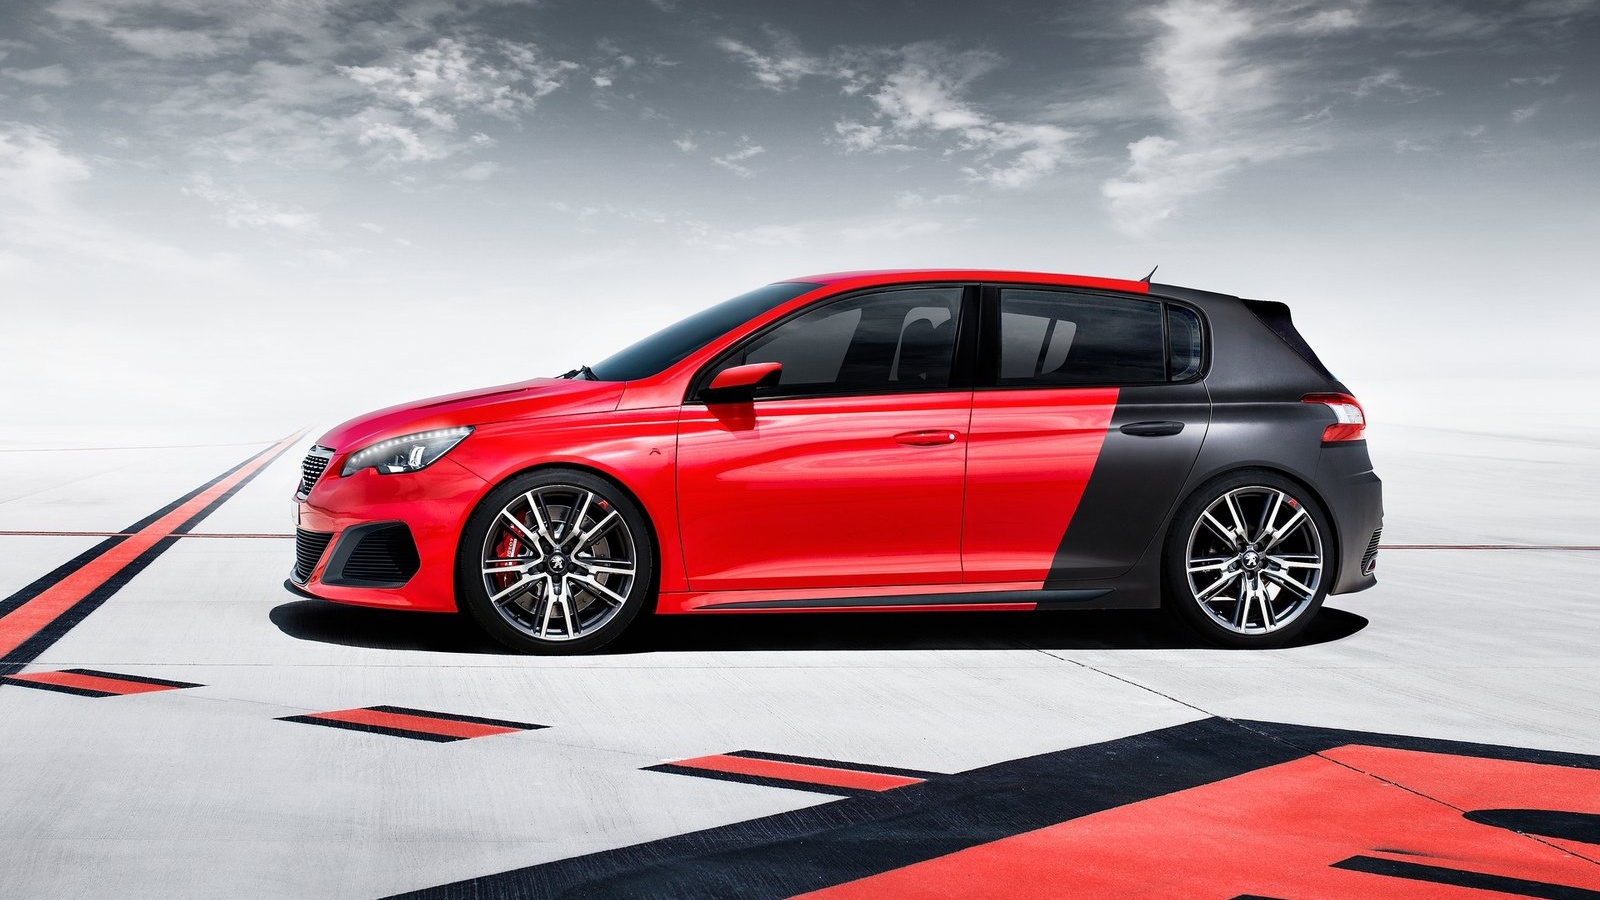 modification race cars 2013 peugeot 308 r concept 19 1 6 thp turbo 270 hp. Black Bedroom Furniture Sets. Home Design Ideas